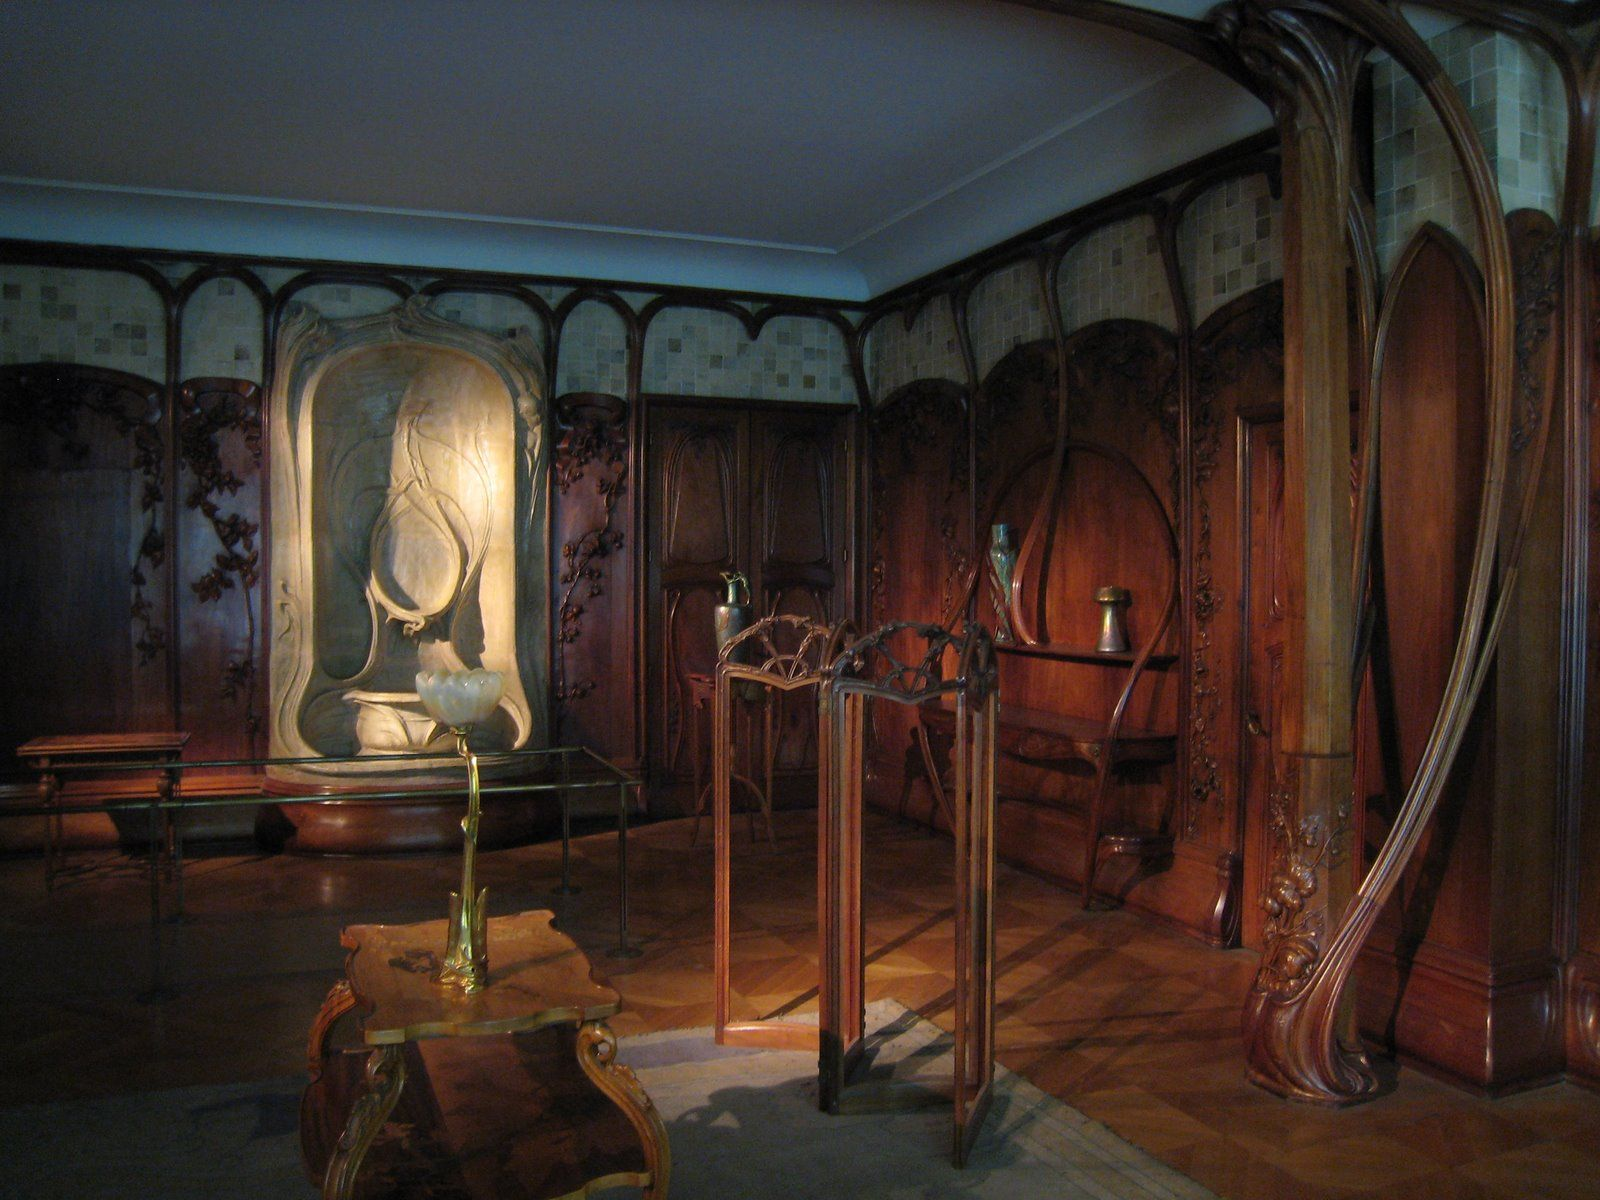 Art Nouveau Design Reminds Me Of The Set Design From Lord Of The